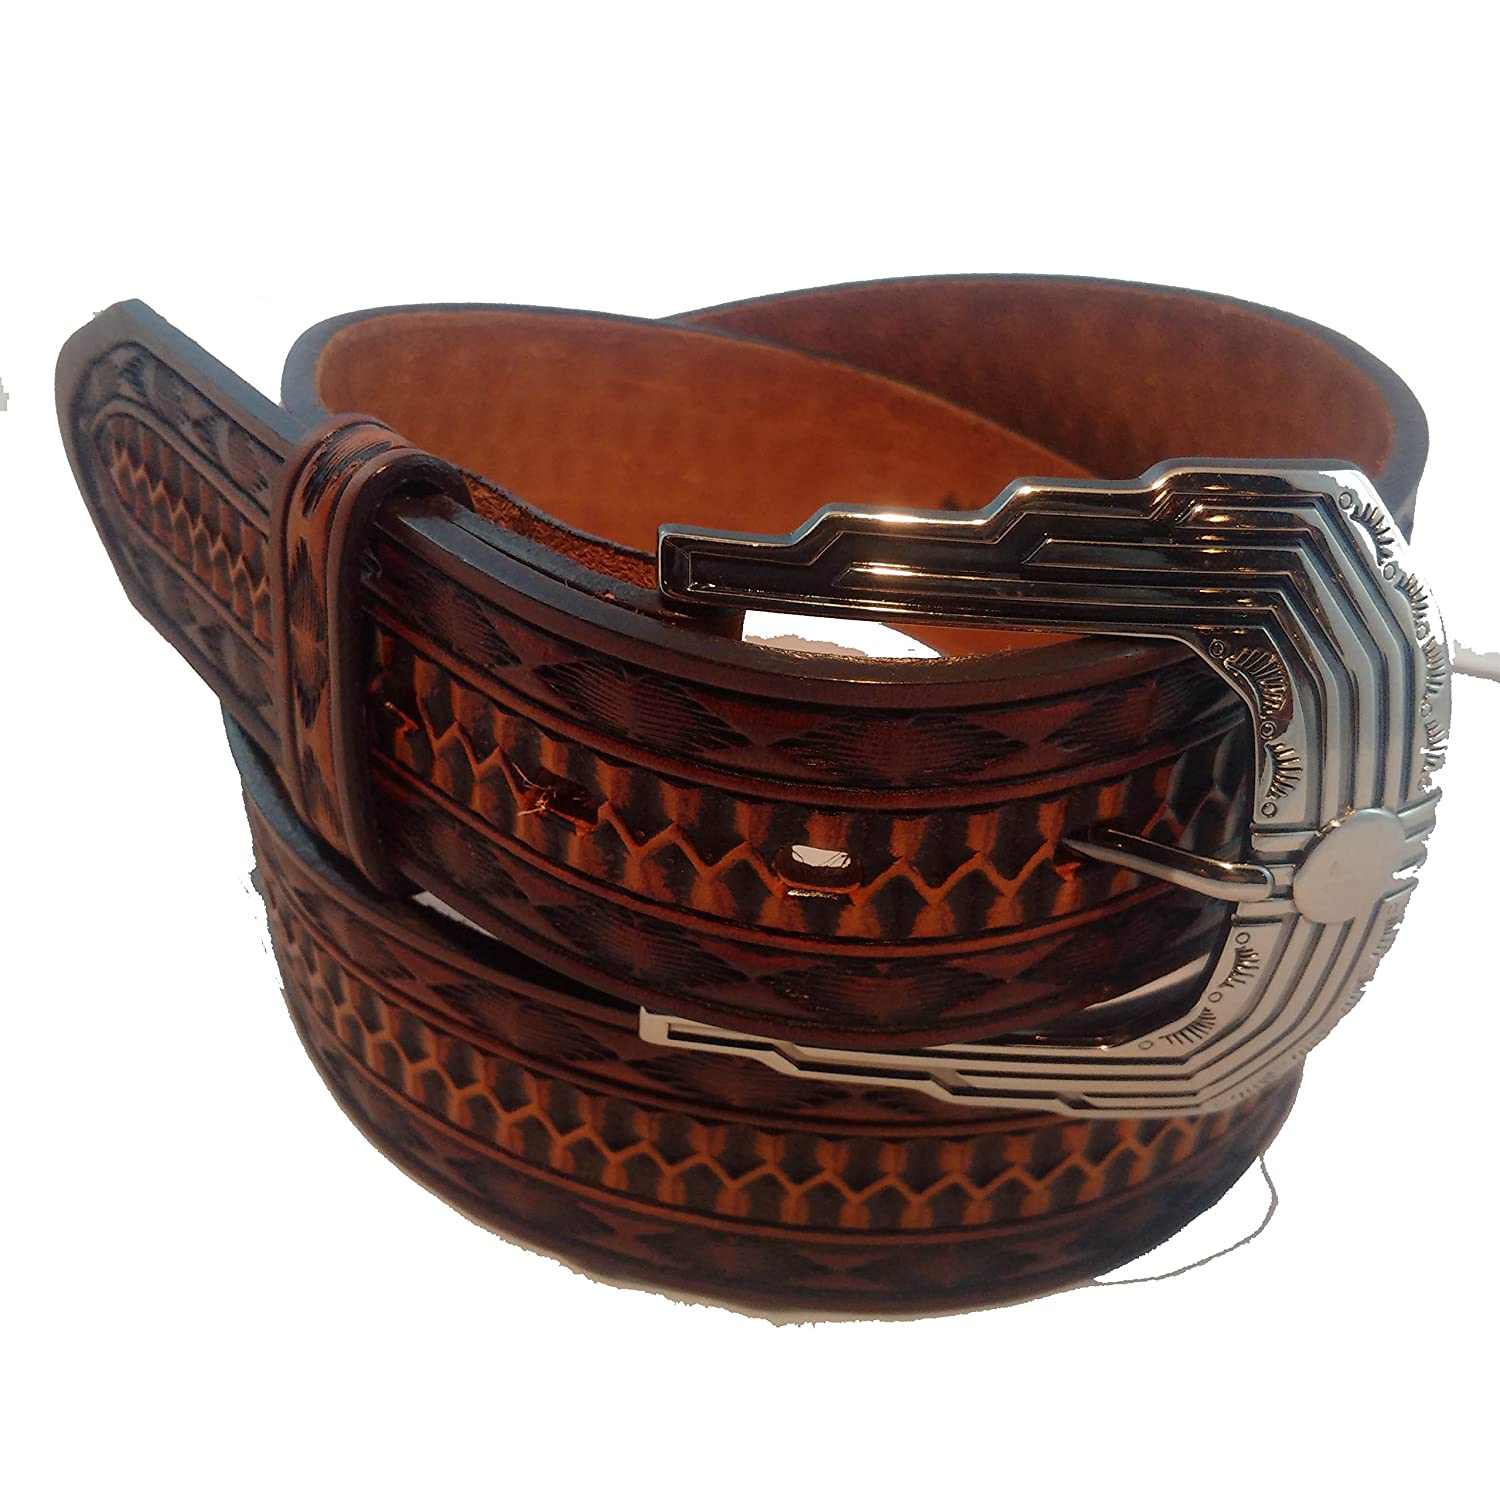 Midnight River hand tooled made in USA top grain leather and buckle belt fits 33 to 36 inches